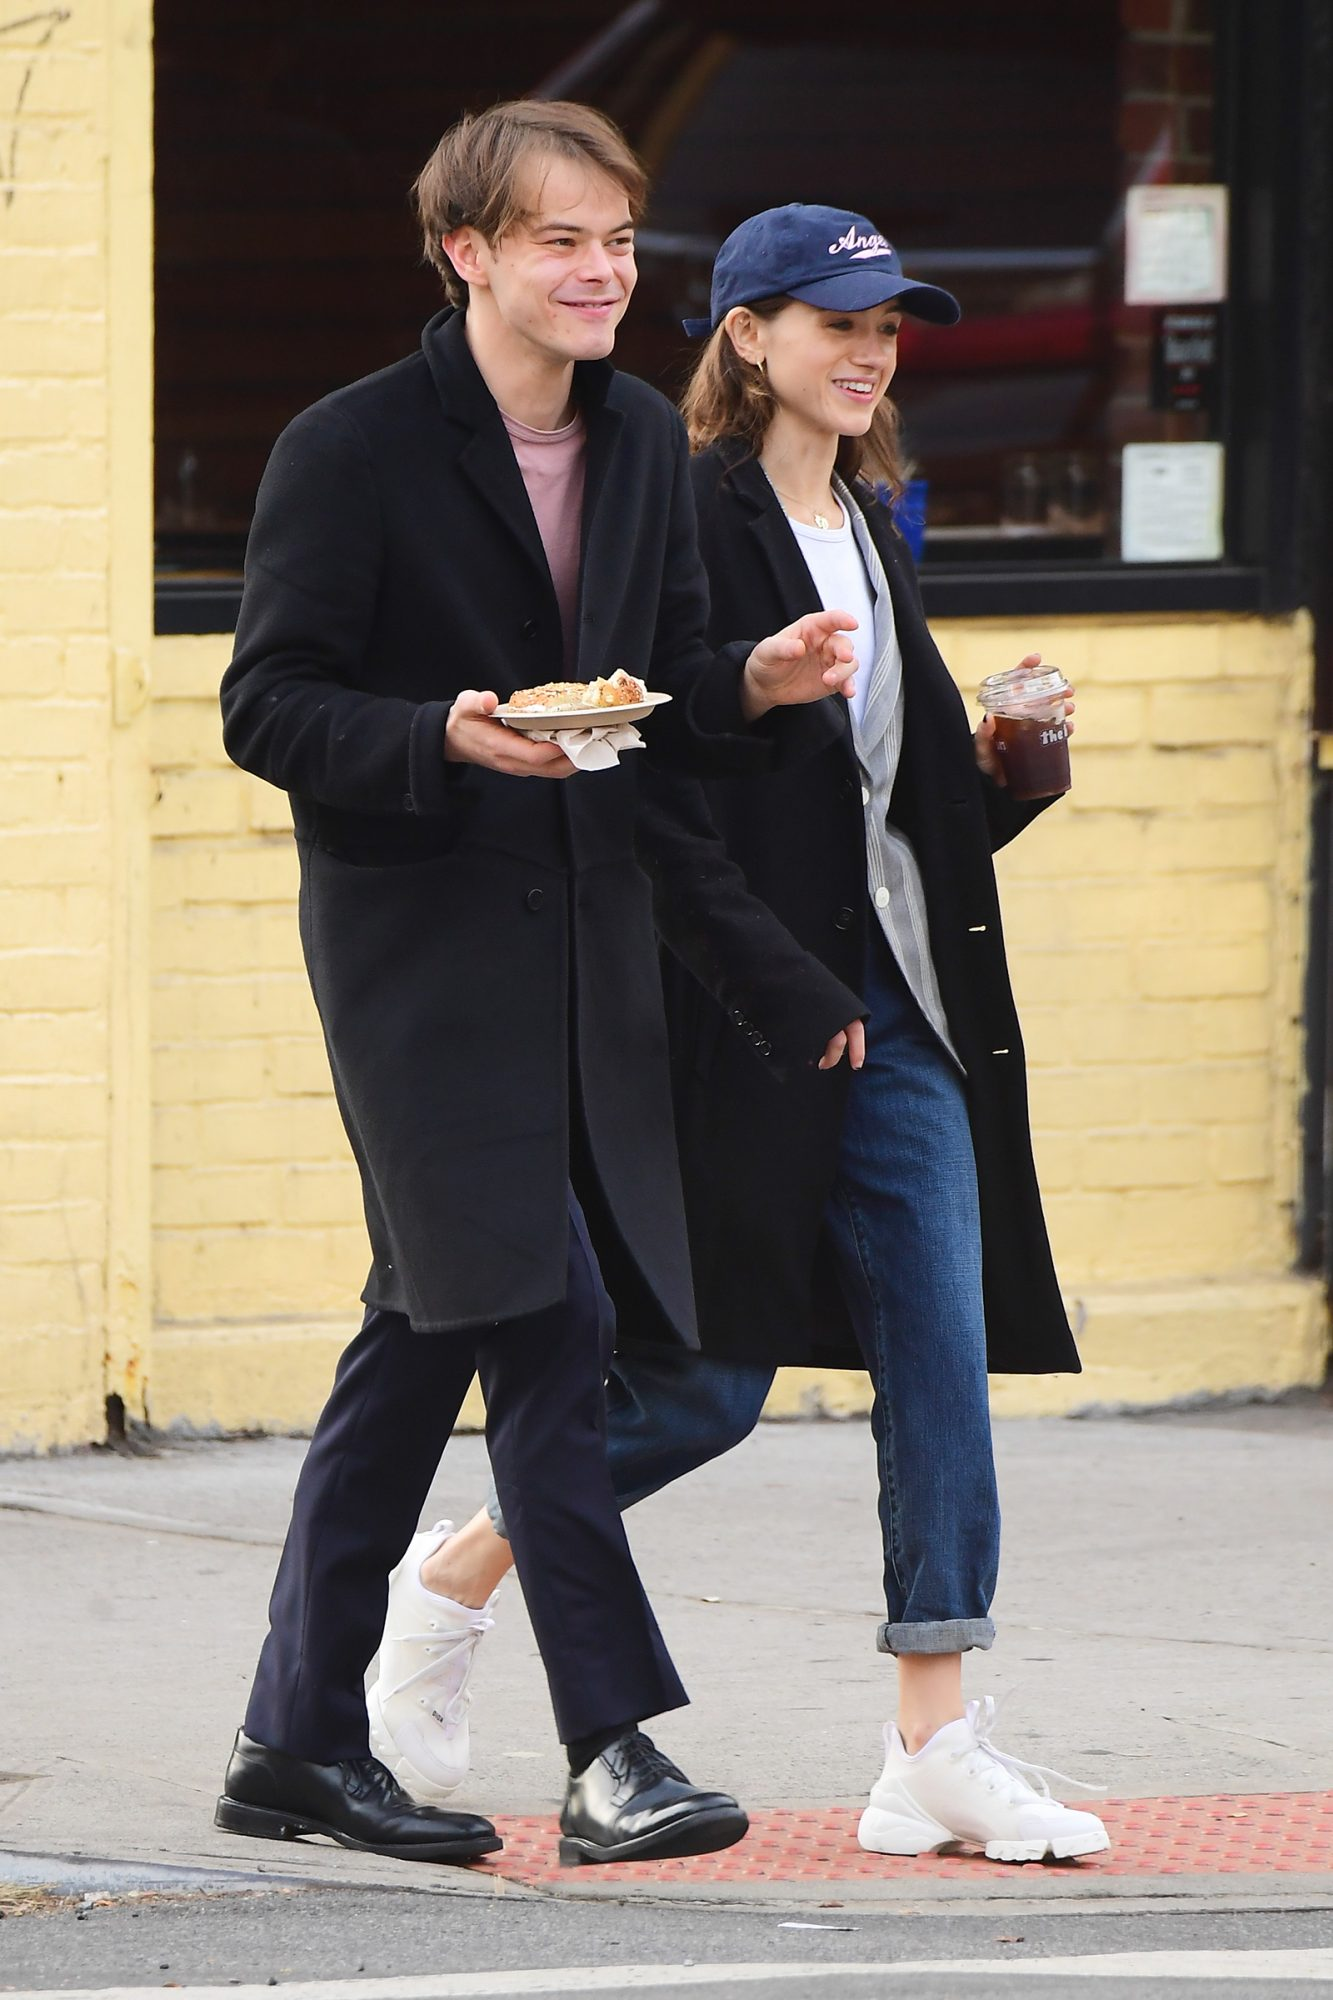 Stranger Things Stars Charlie Heaton and Natalia Dyer Wear Matching Outfits for Coffee Run in NYC